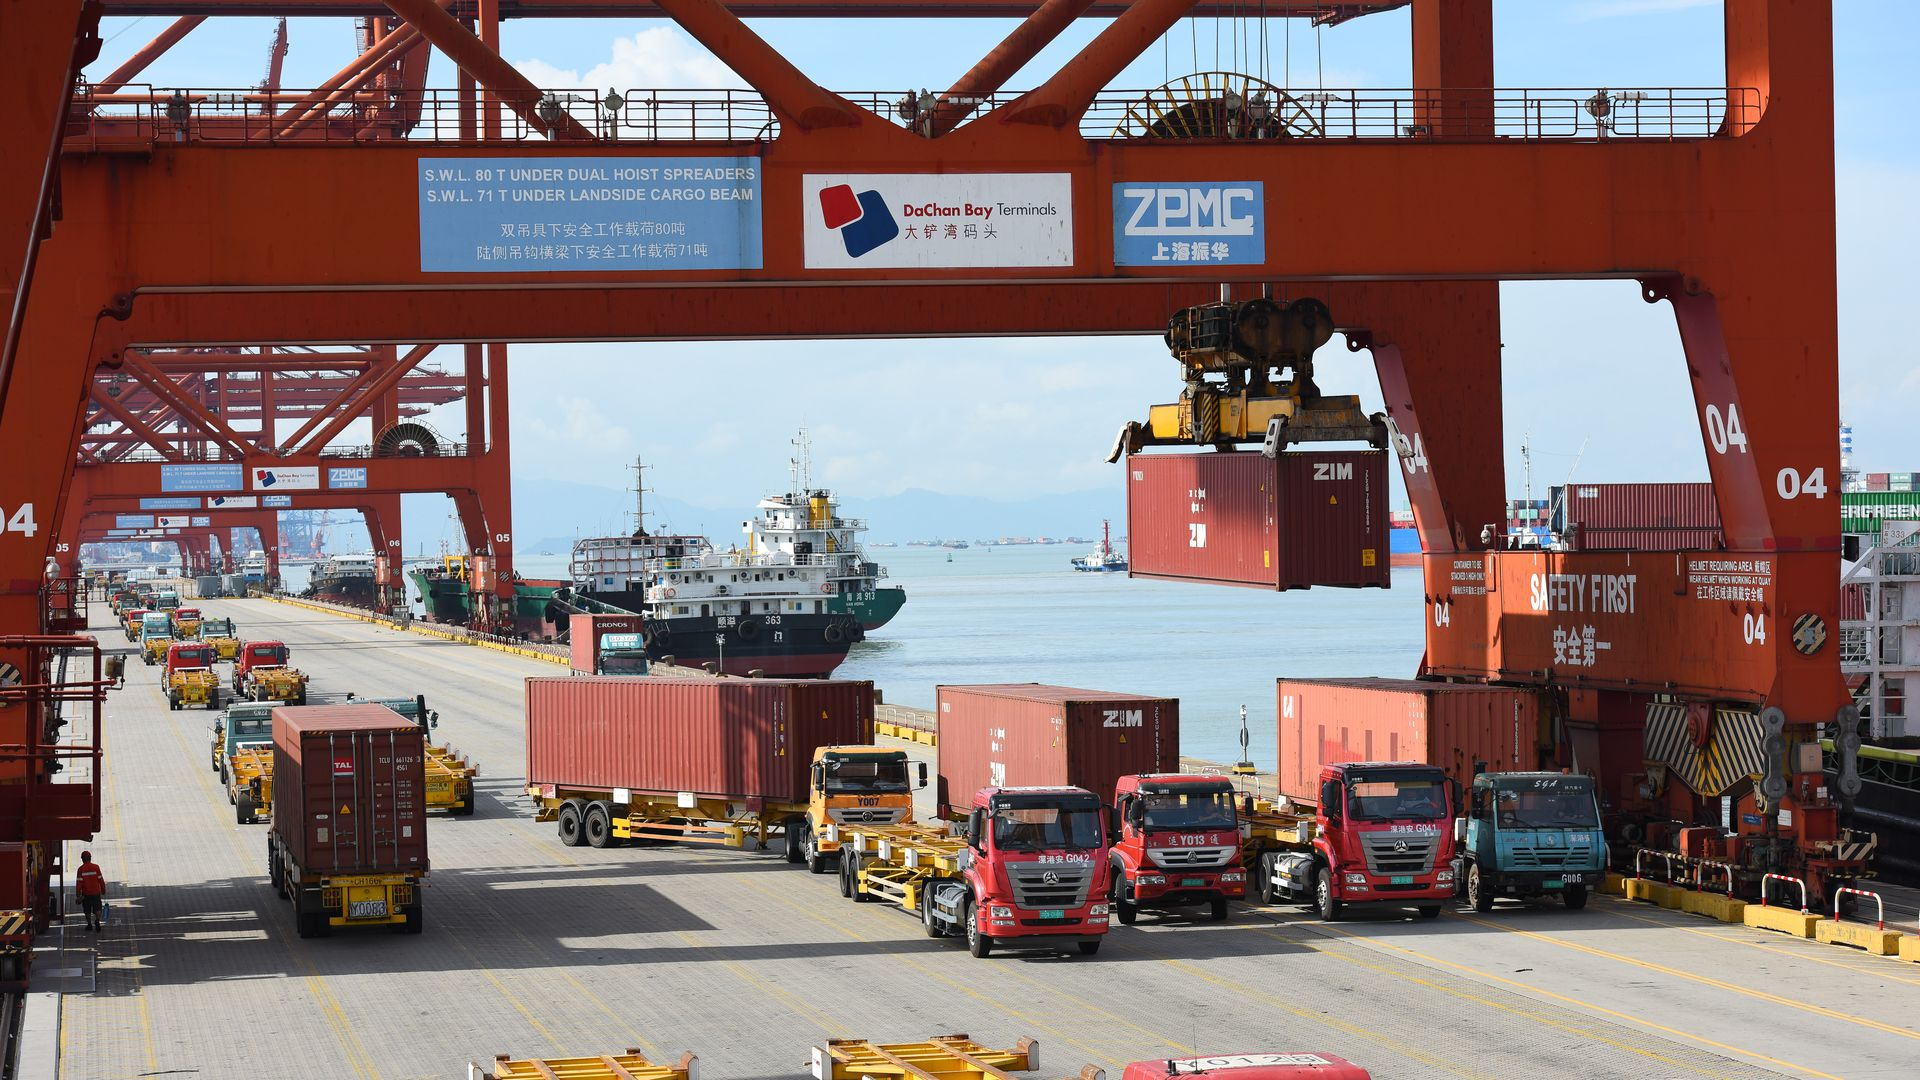 Trucks transport containers at Dachan Bay Terminals in Shenzhen, Guangdong Province of China. Photo: VCG